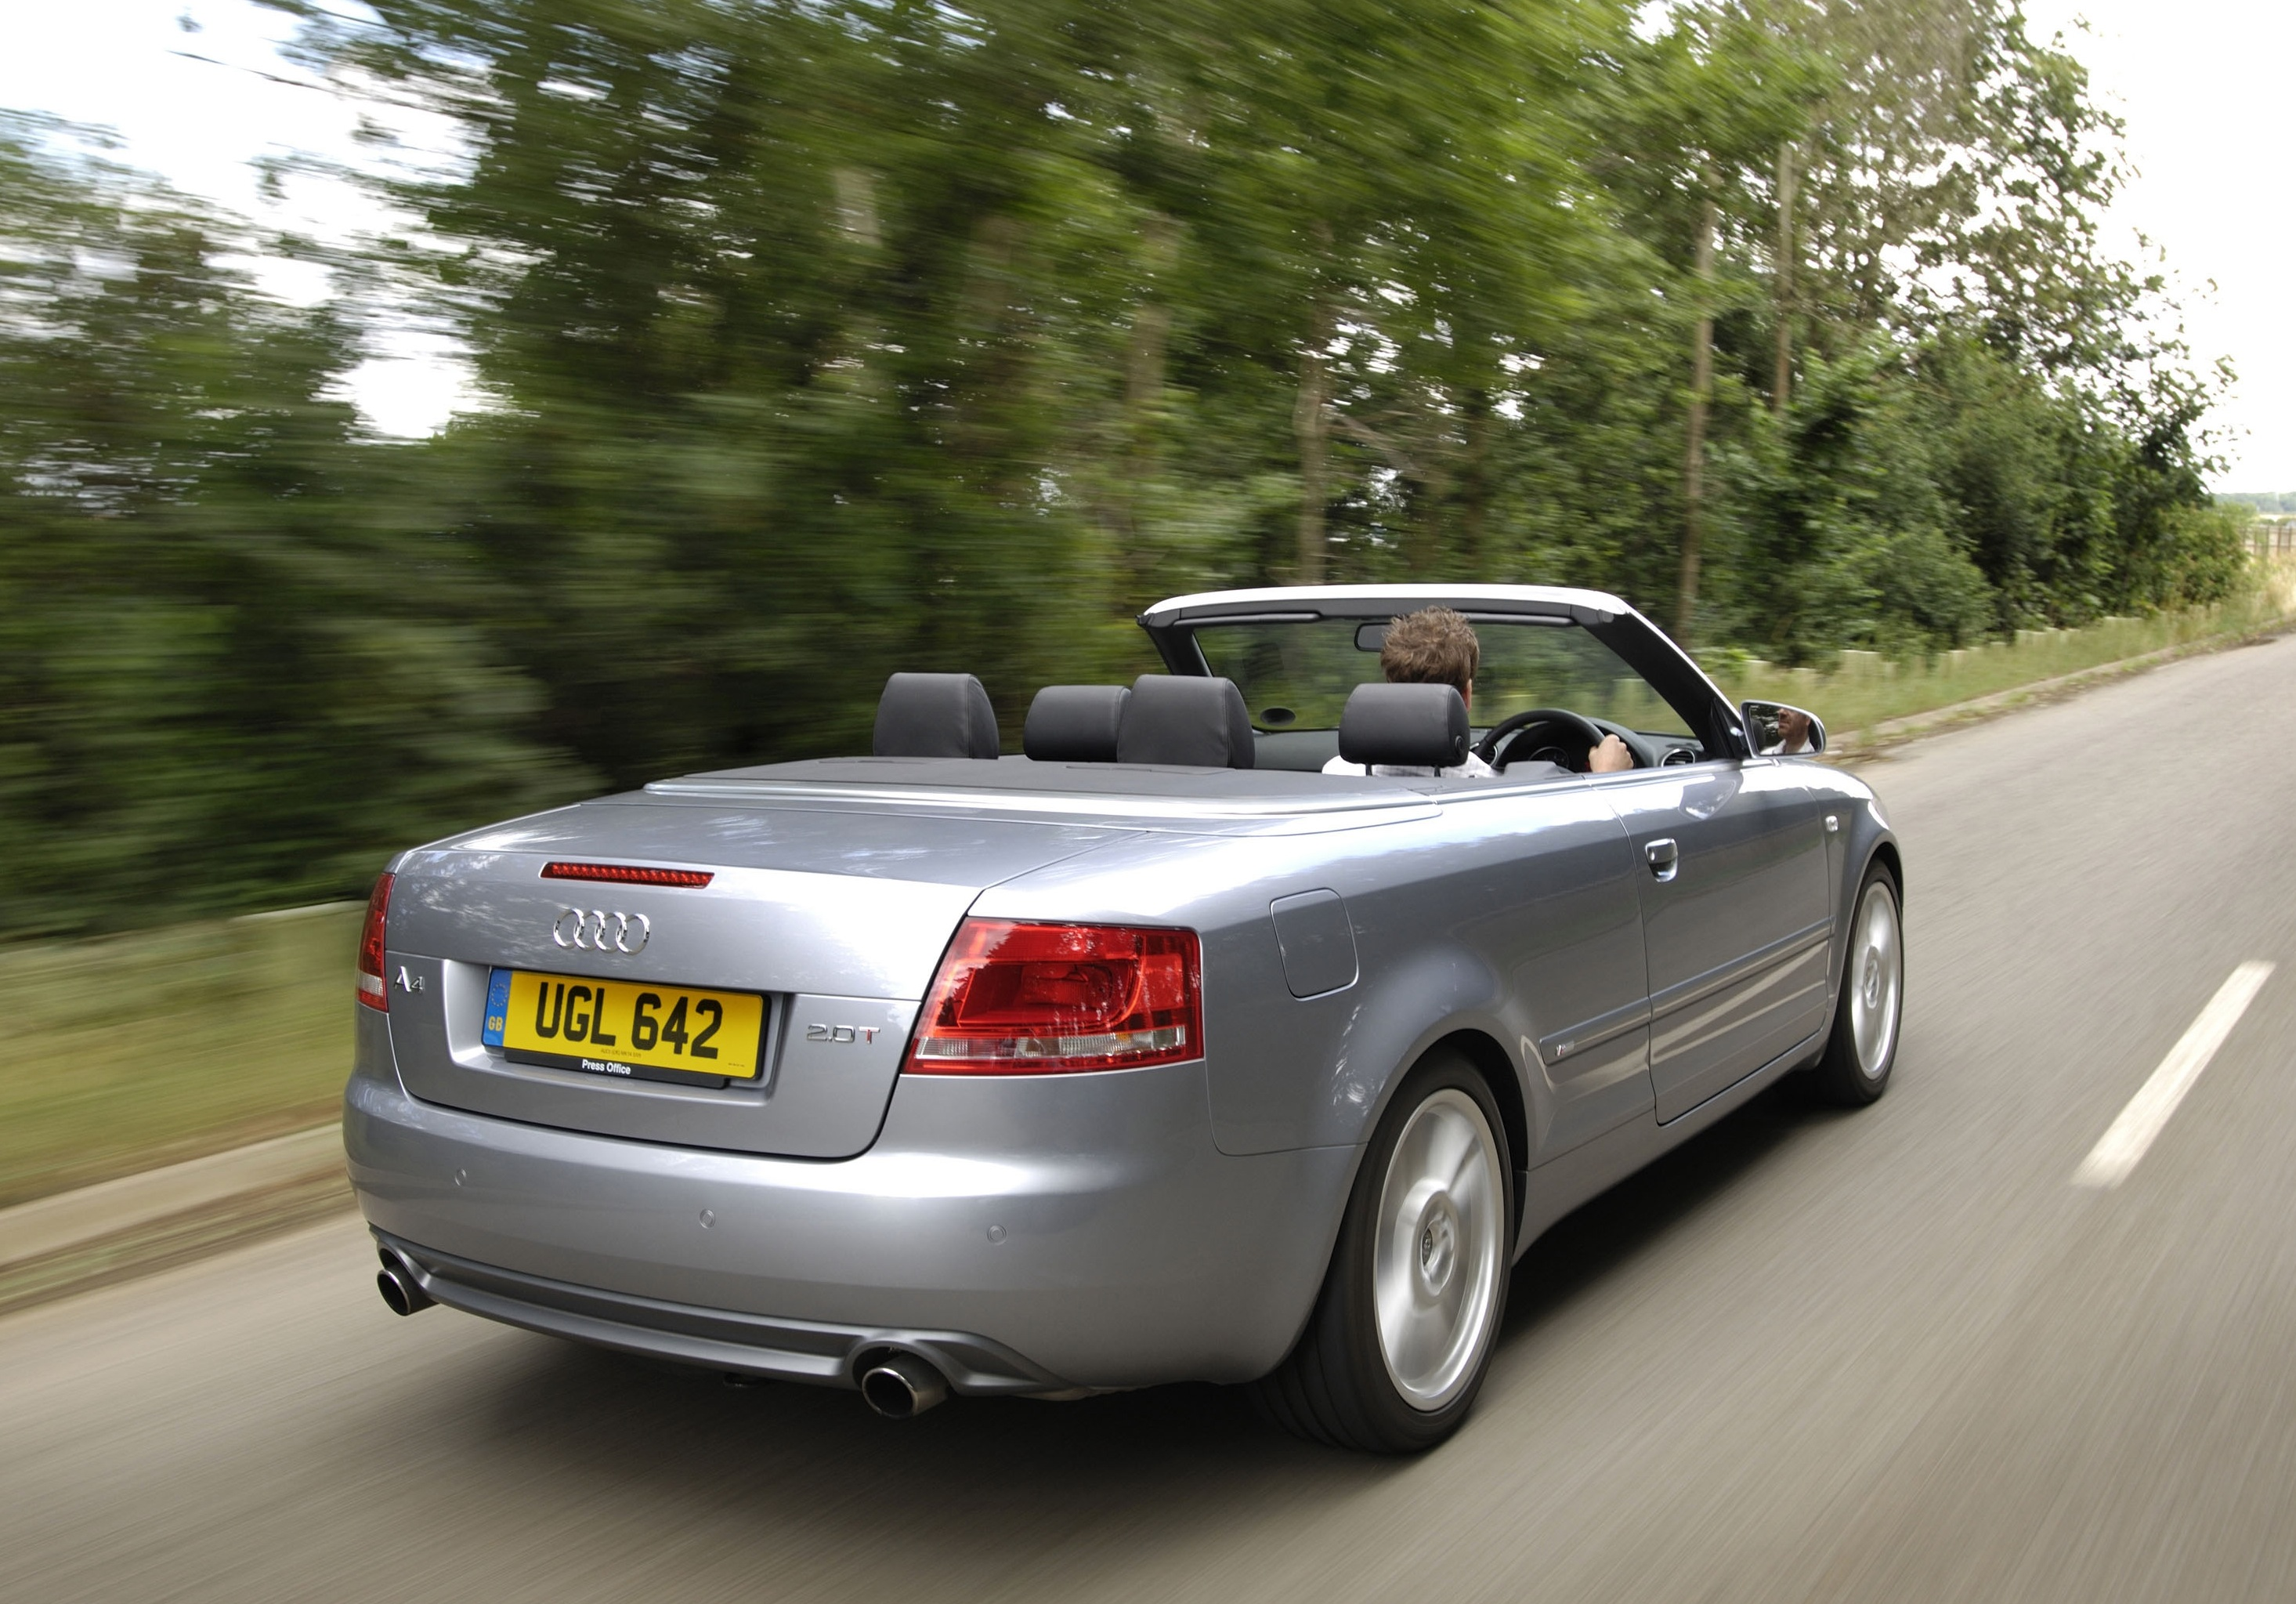 Audi A4 Cabriolet is one of many cabriolet models seeing residual values rise during February 2012